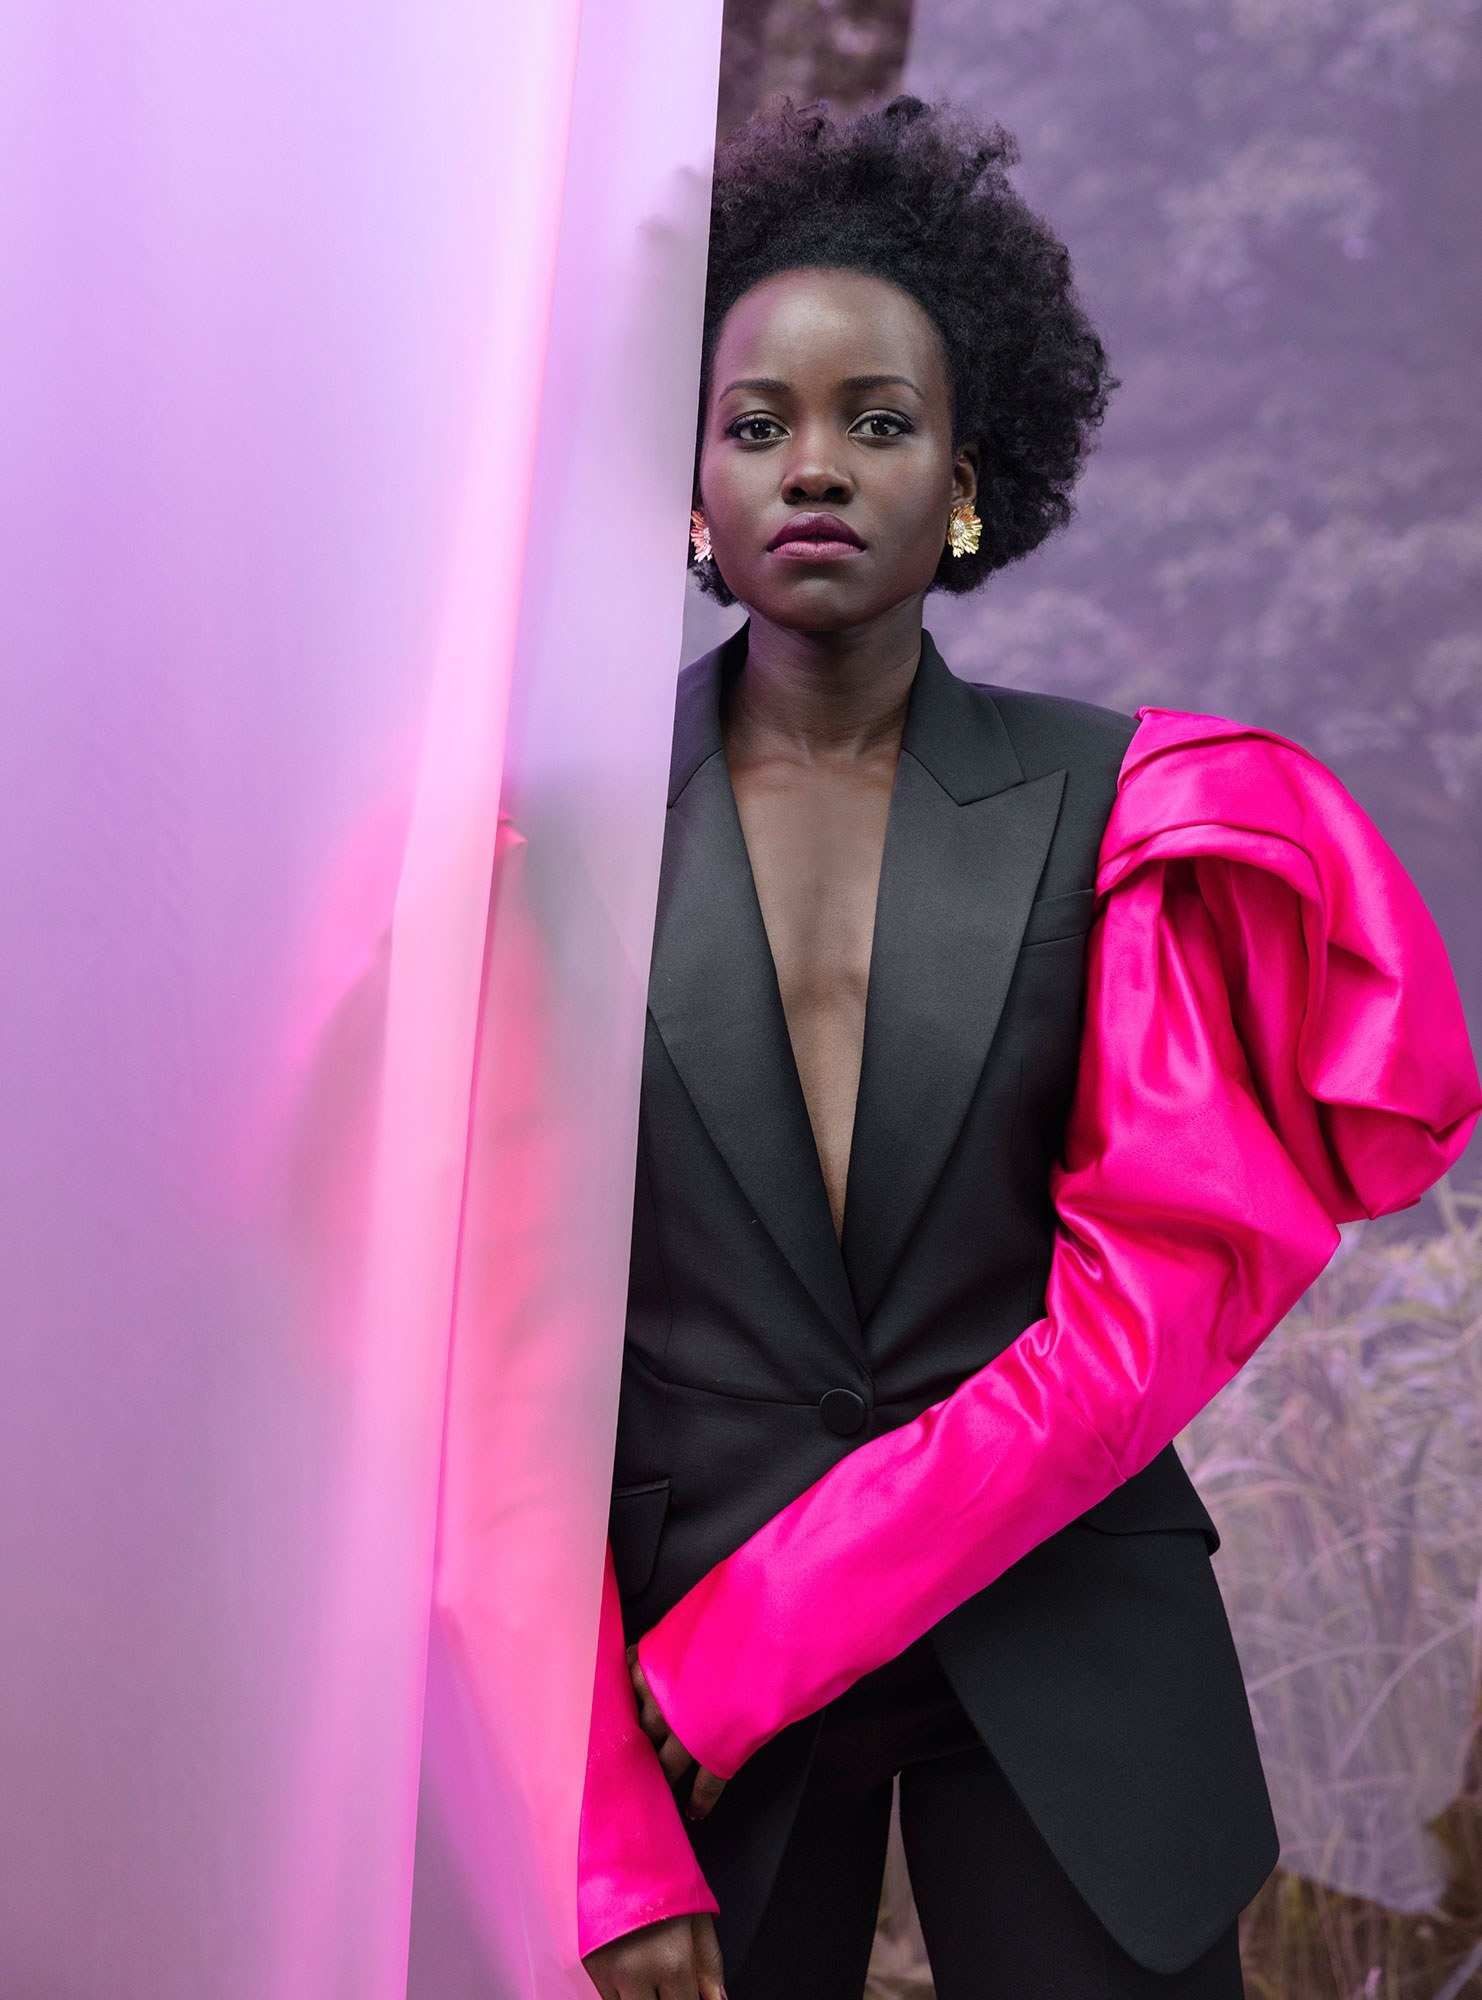 PHOTOGRAPH BY JACKIE NICKERSON; STYLED BY SAMIRA NASR. LUPITA NYONG'o. PHOTOGRAPH BY JACKIE NICKERSON; STYLED BY SAMIRA NASR.